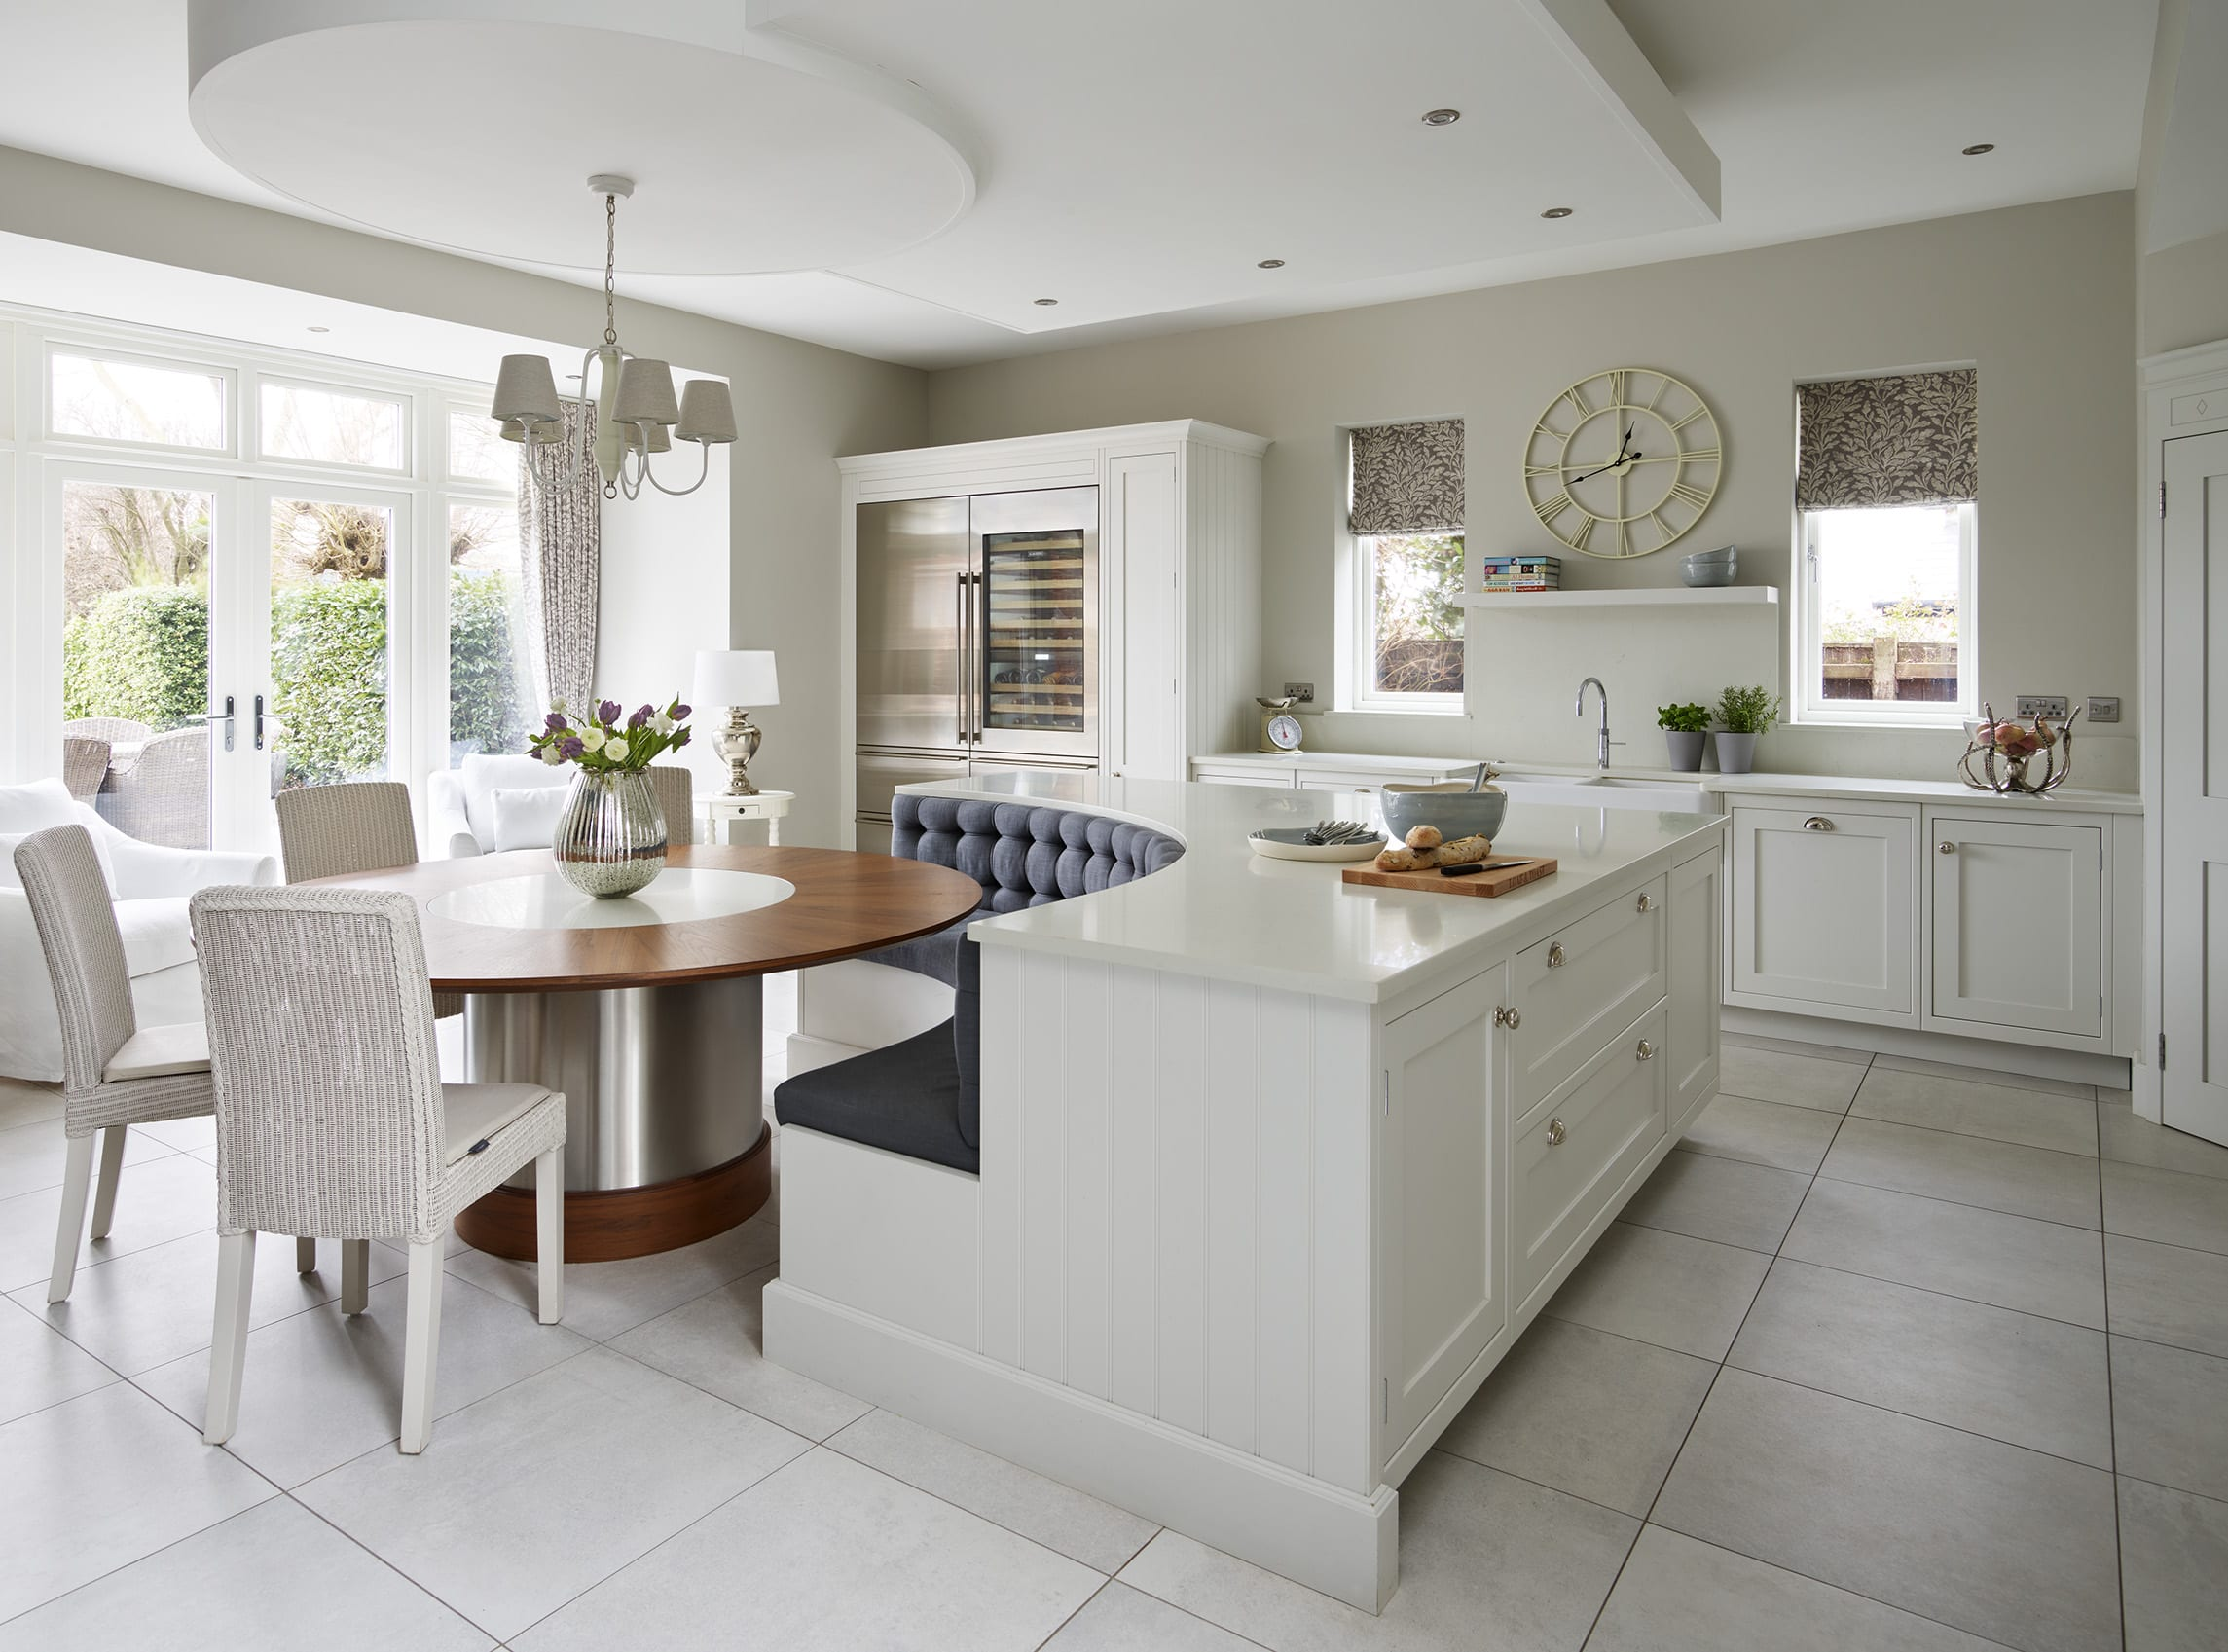 Tillingham kitchen in Essex